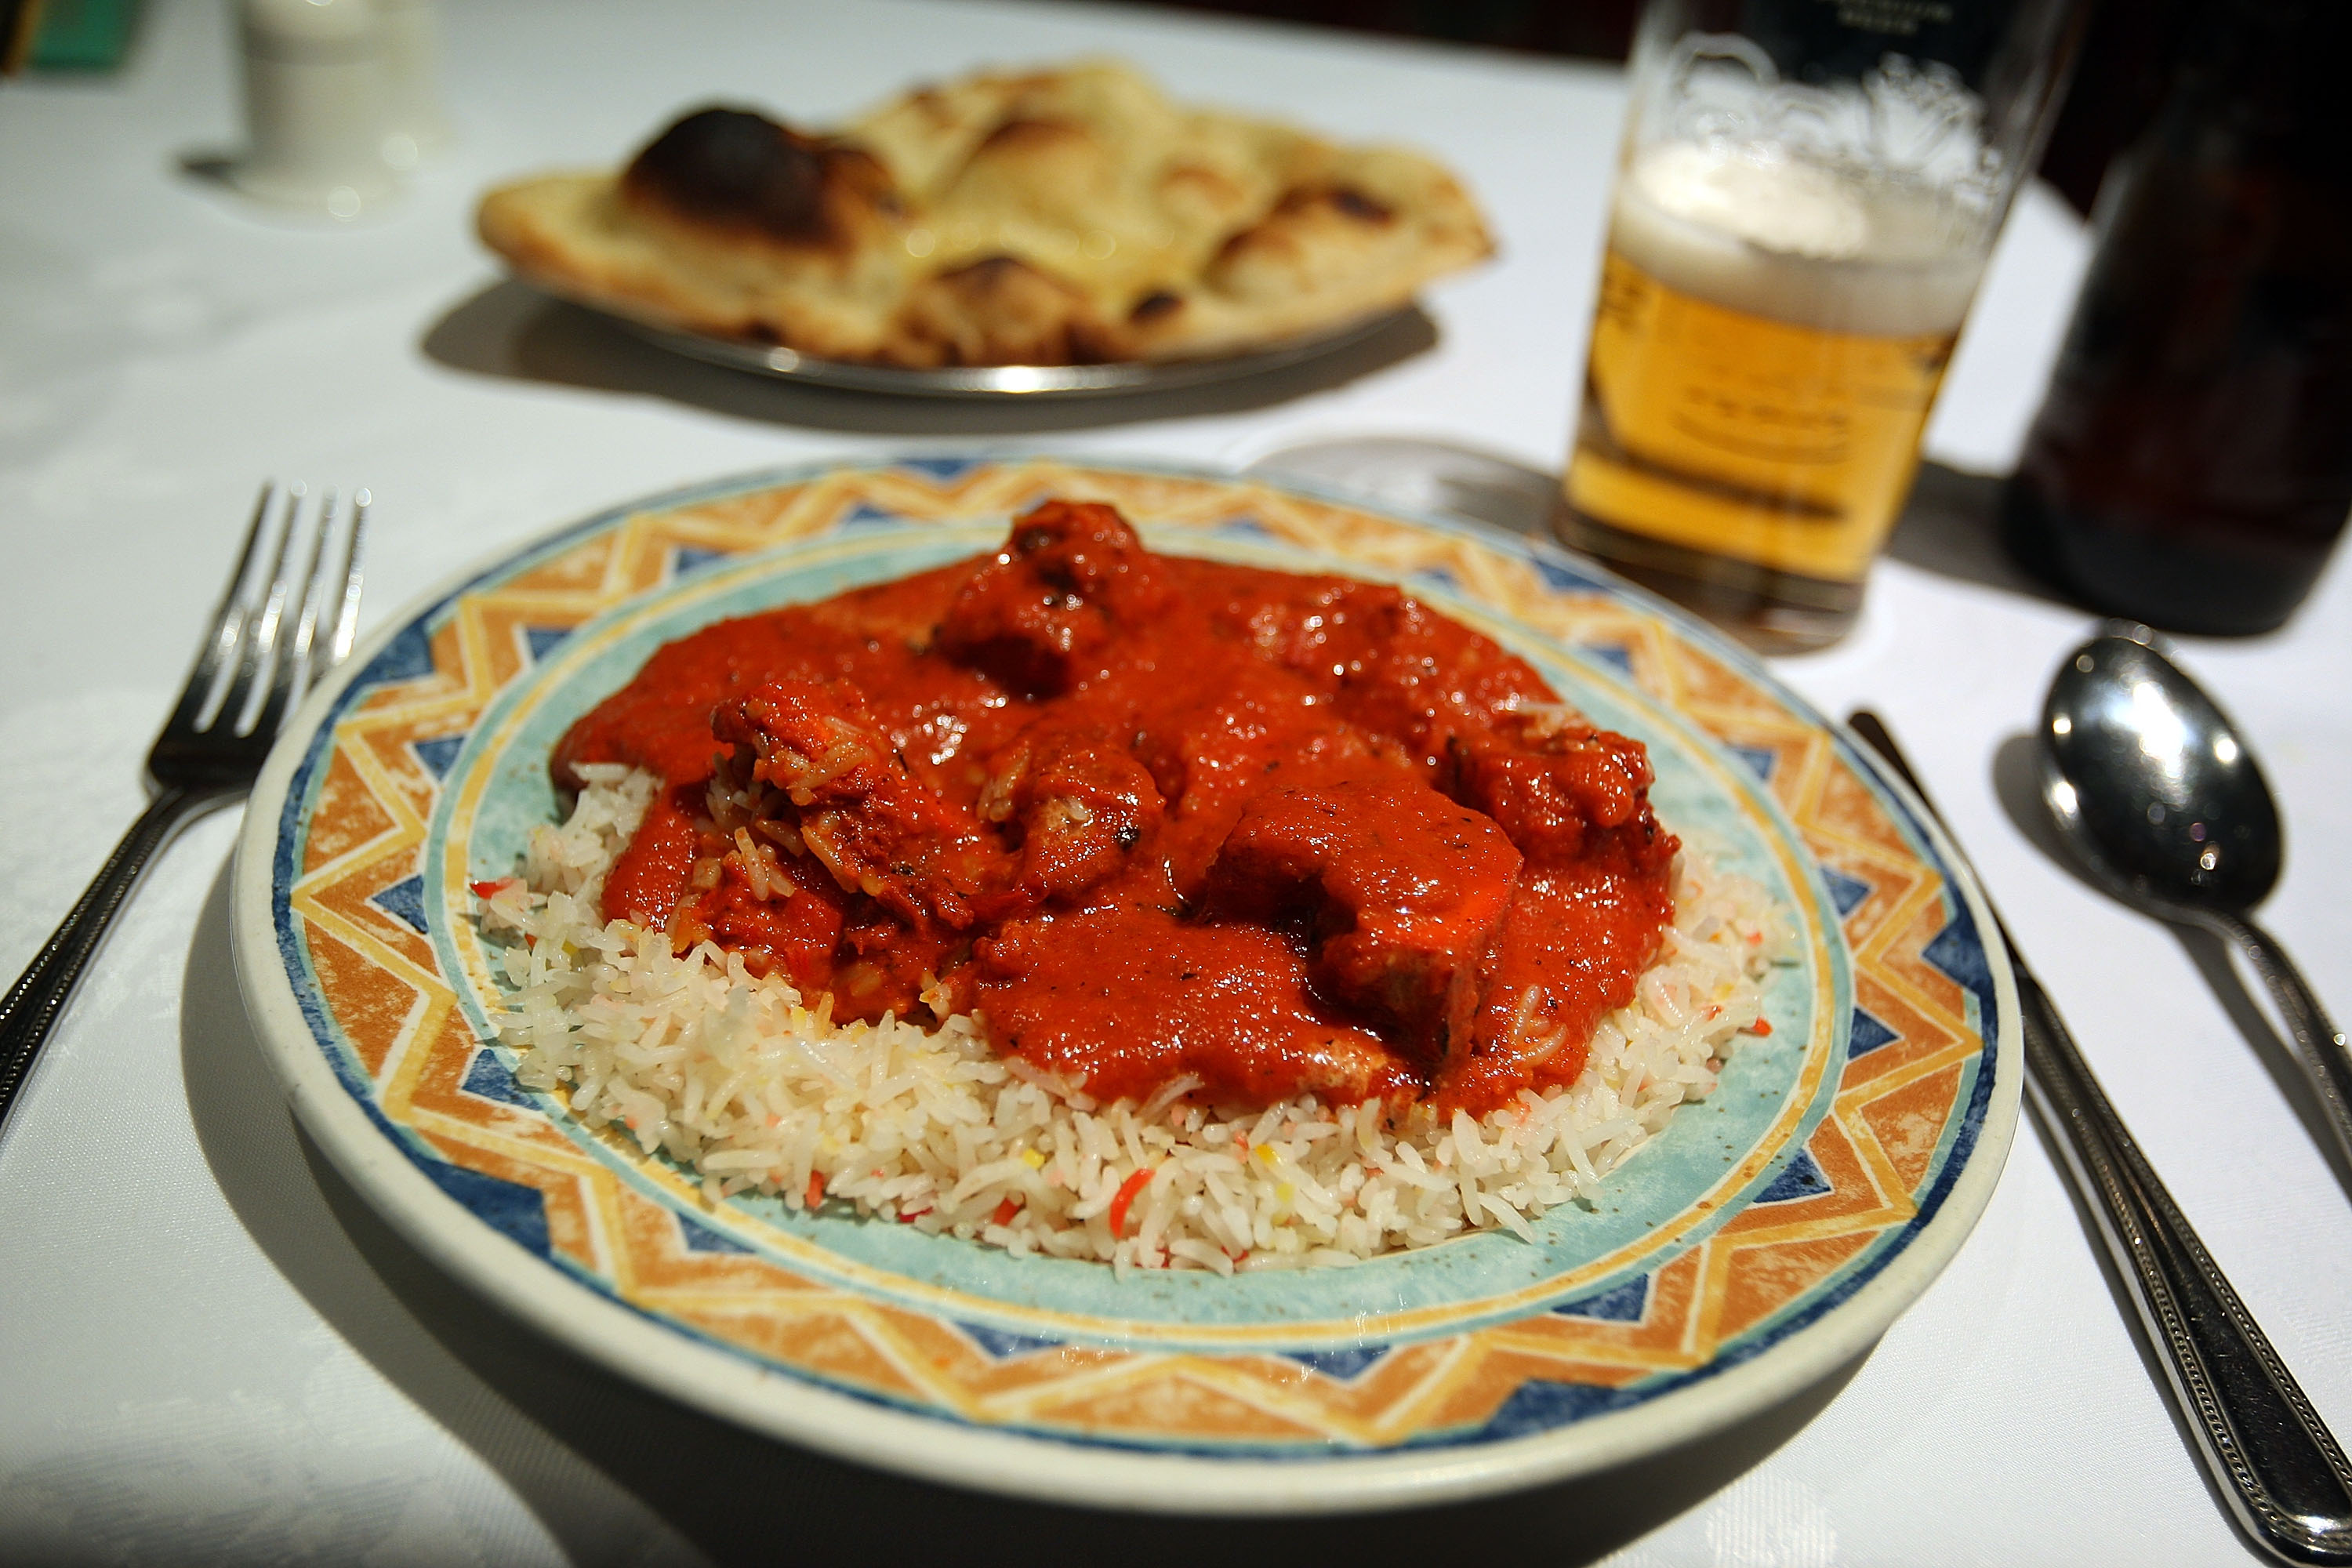 A plate of chicken tikka masala in a London curry restaurant